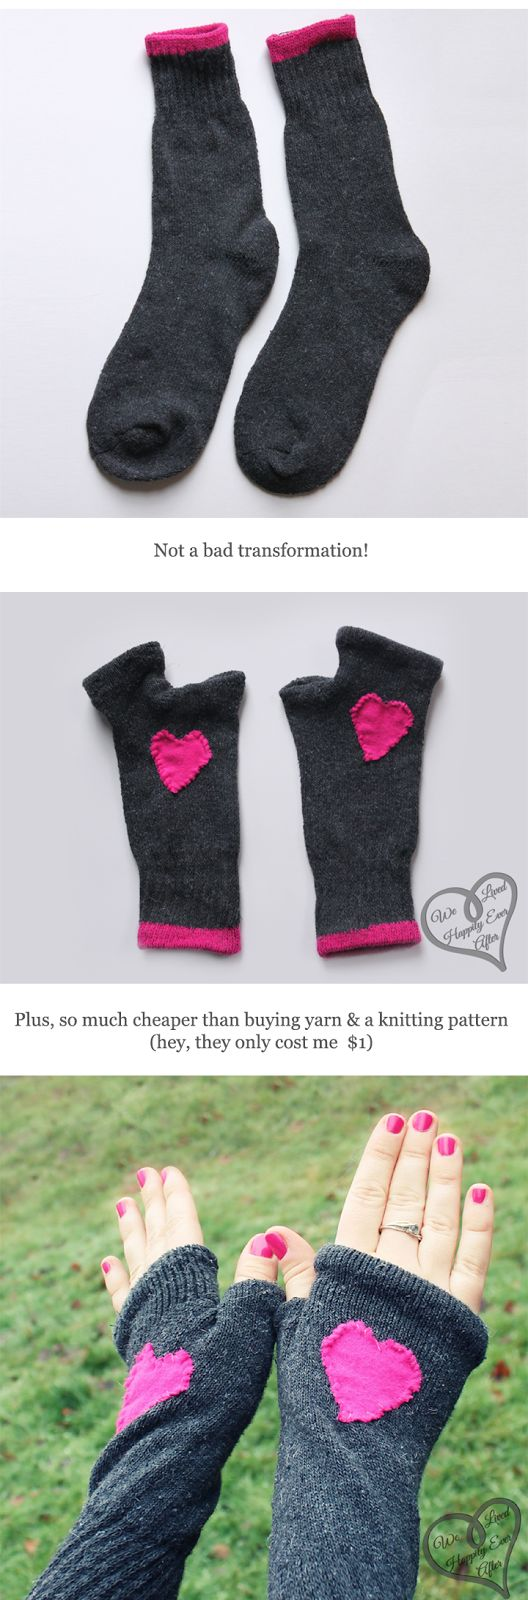 Finger-less Gloves made from Socks! Can't believe I didn't think of doing this. So easy!